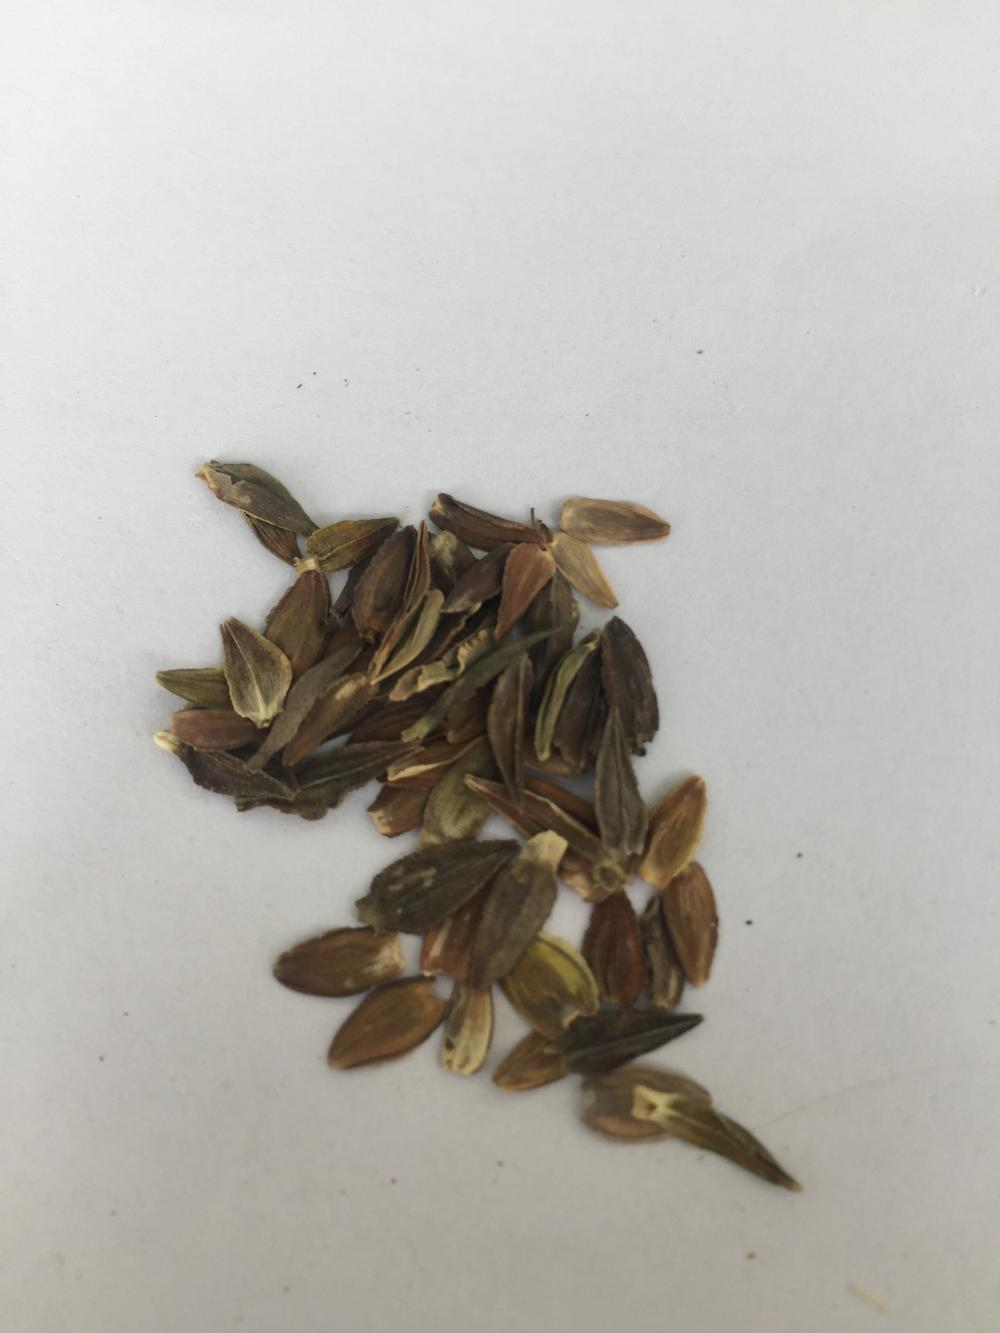 Flower seed germination temperatures